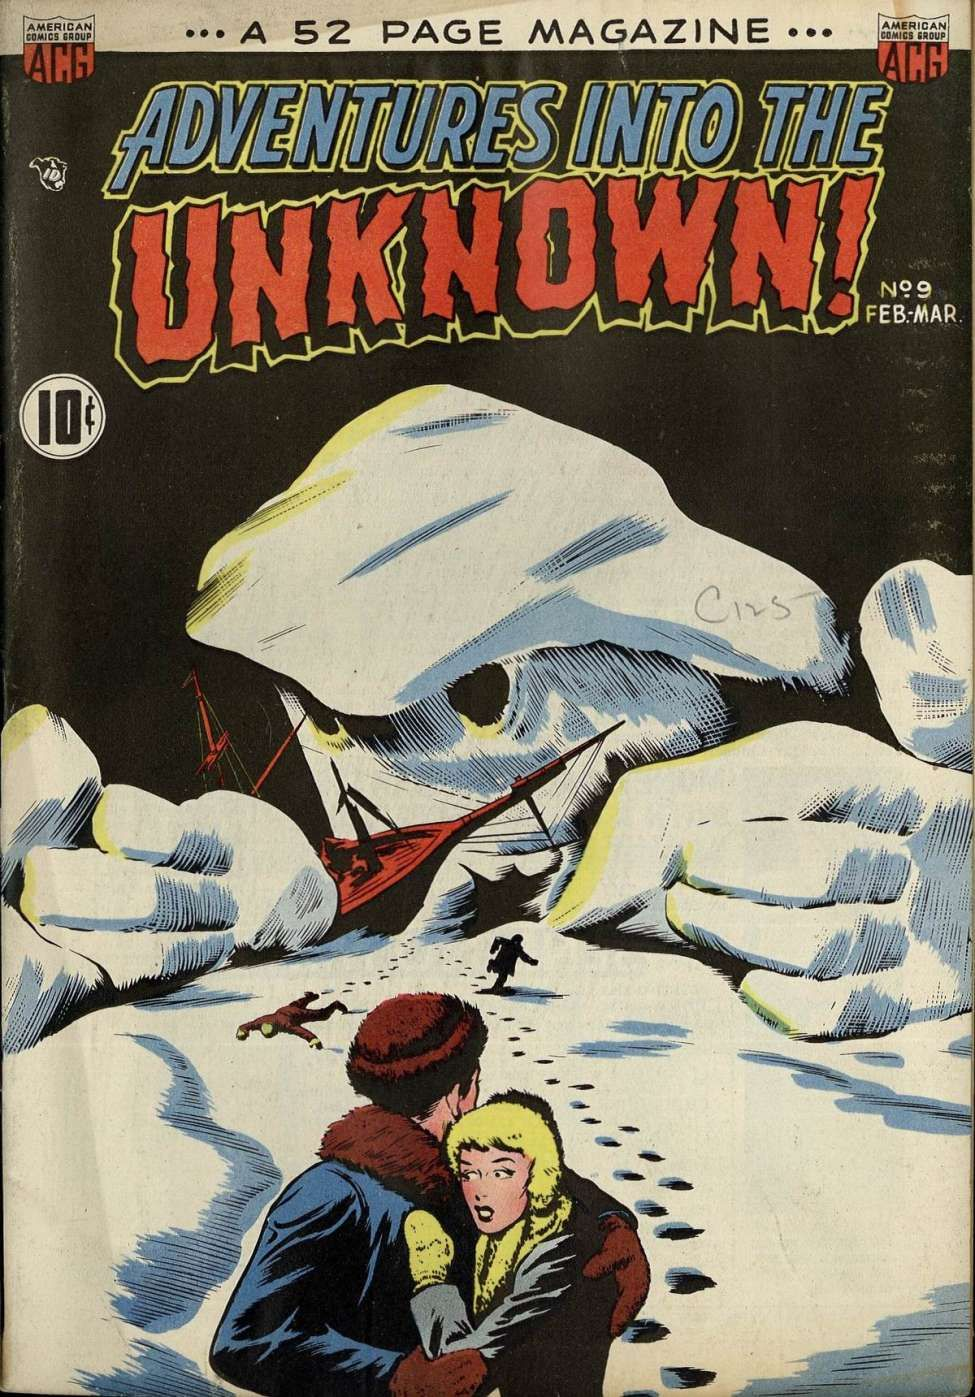 Comic book cover for adventures into the unknown 9